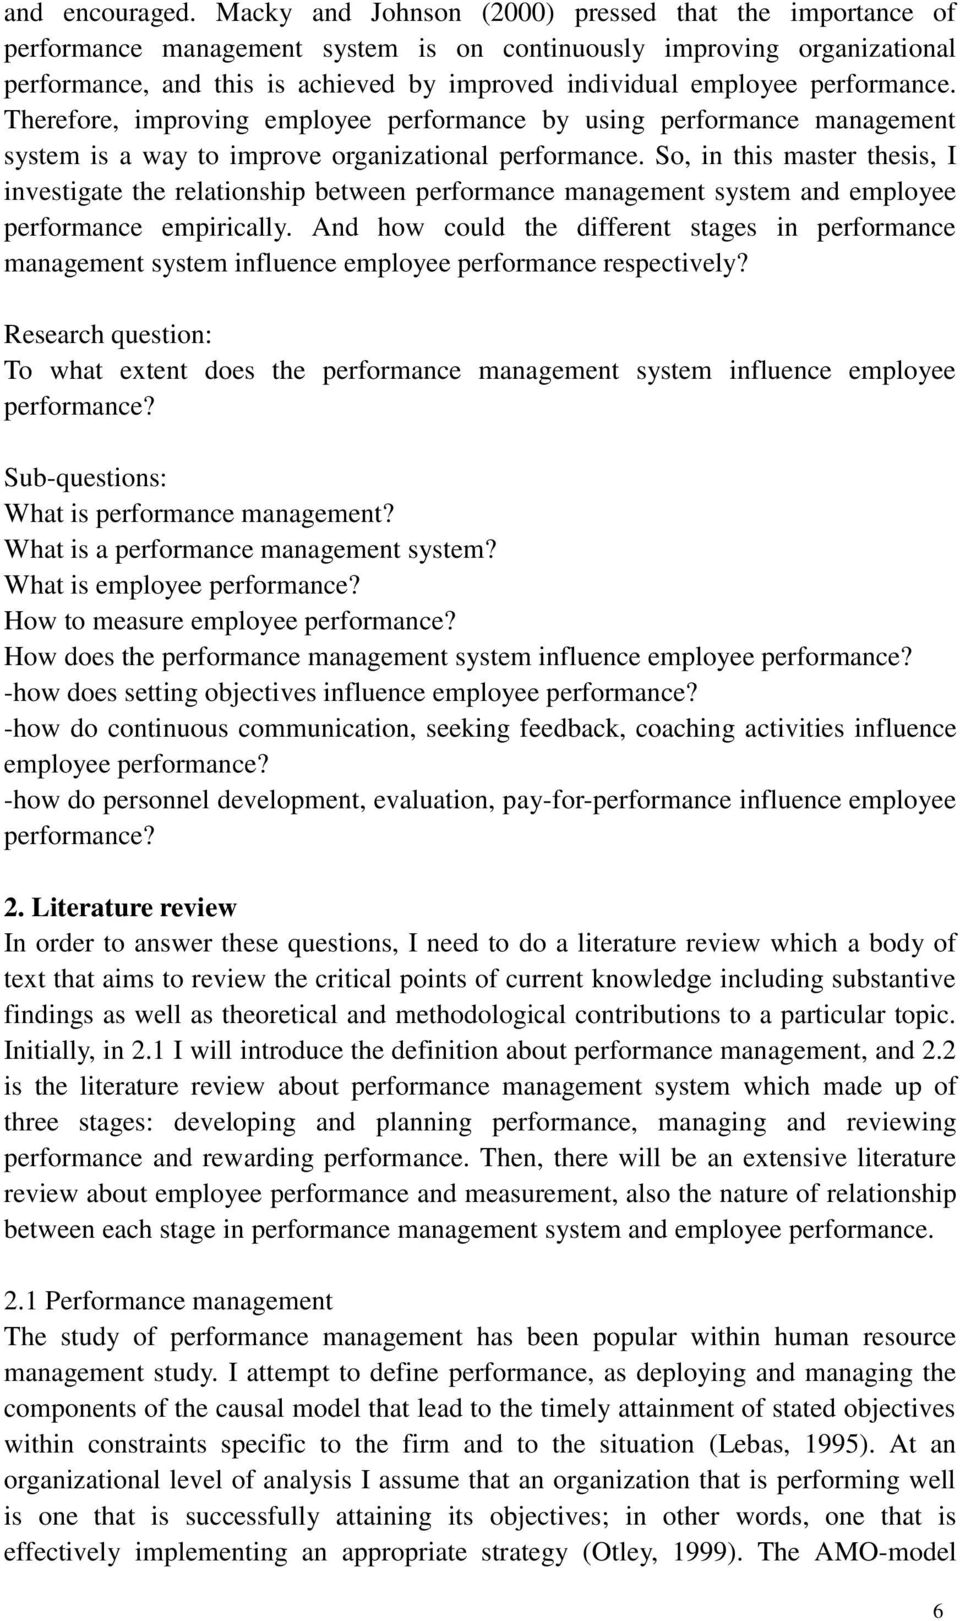 Impact training employee performance research proposal